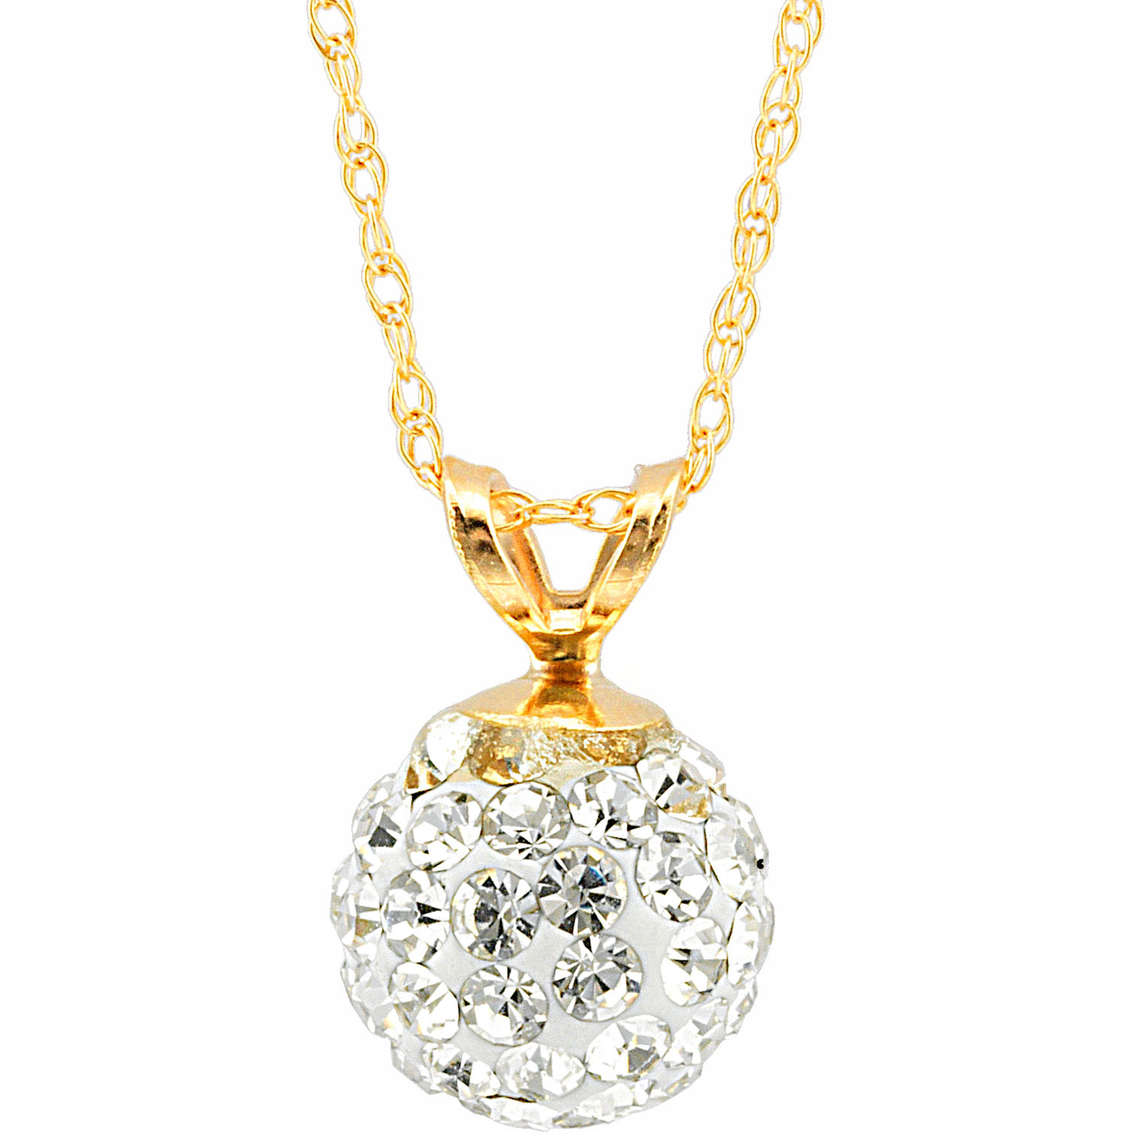 shop jgi wholesale pendant pave circle fine jewelry crystal ball fashion prom accessories